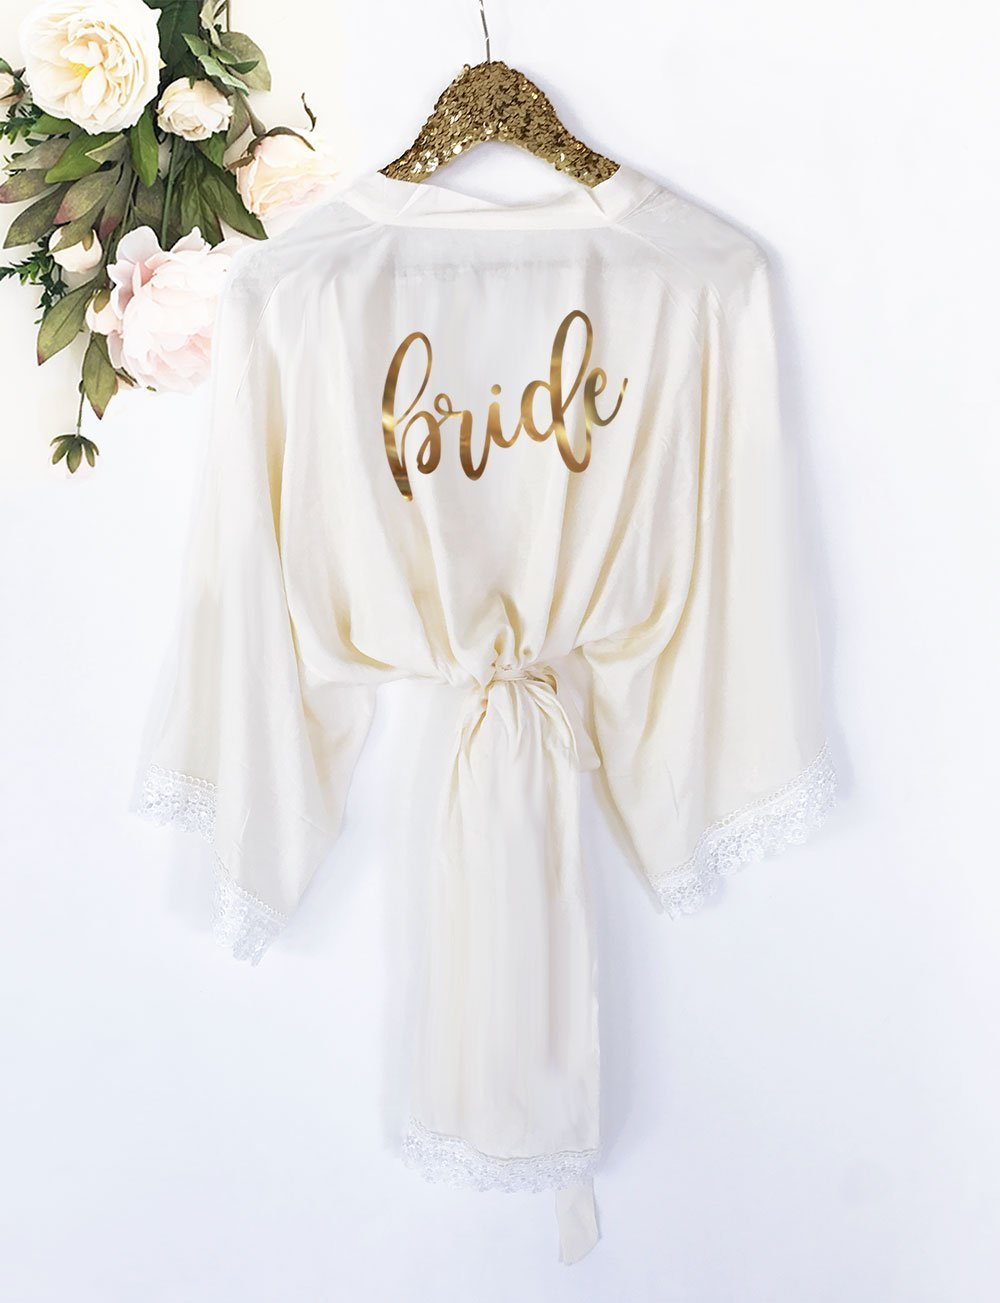 Bride Savvy LLC -Your Bride Box Bridal Party Cotton Lace Robes